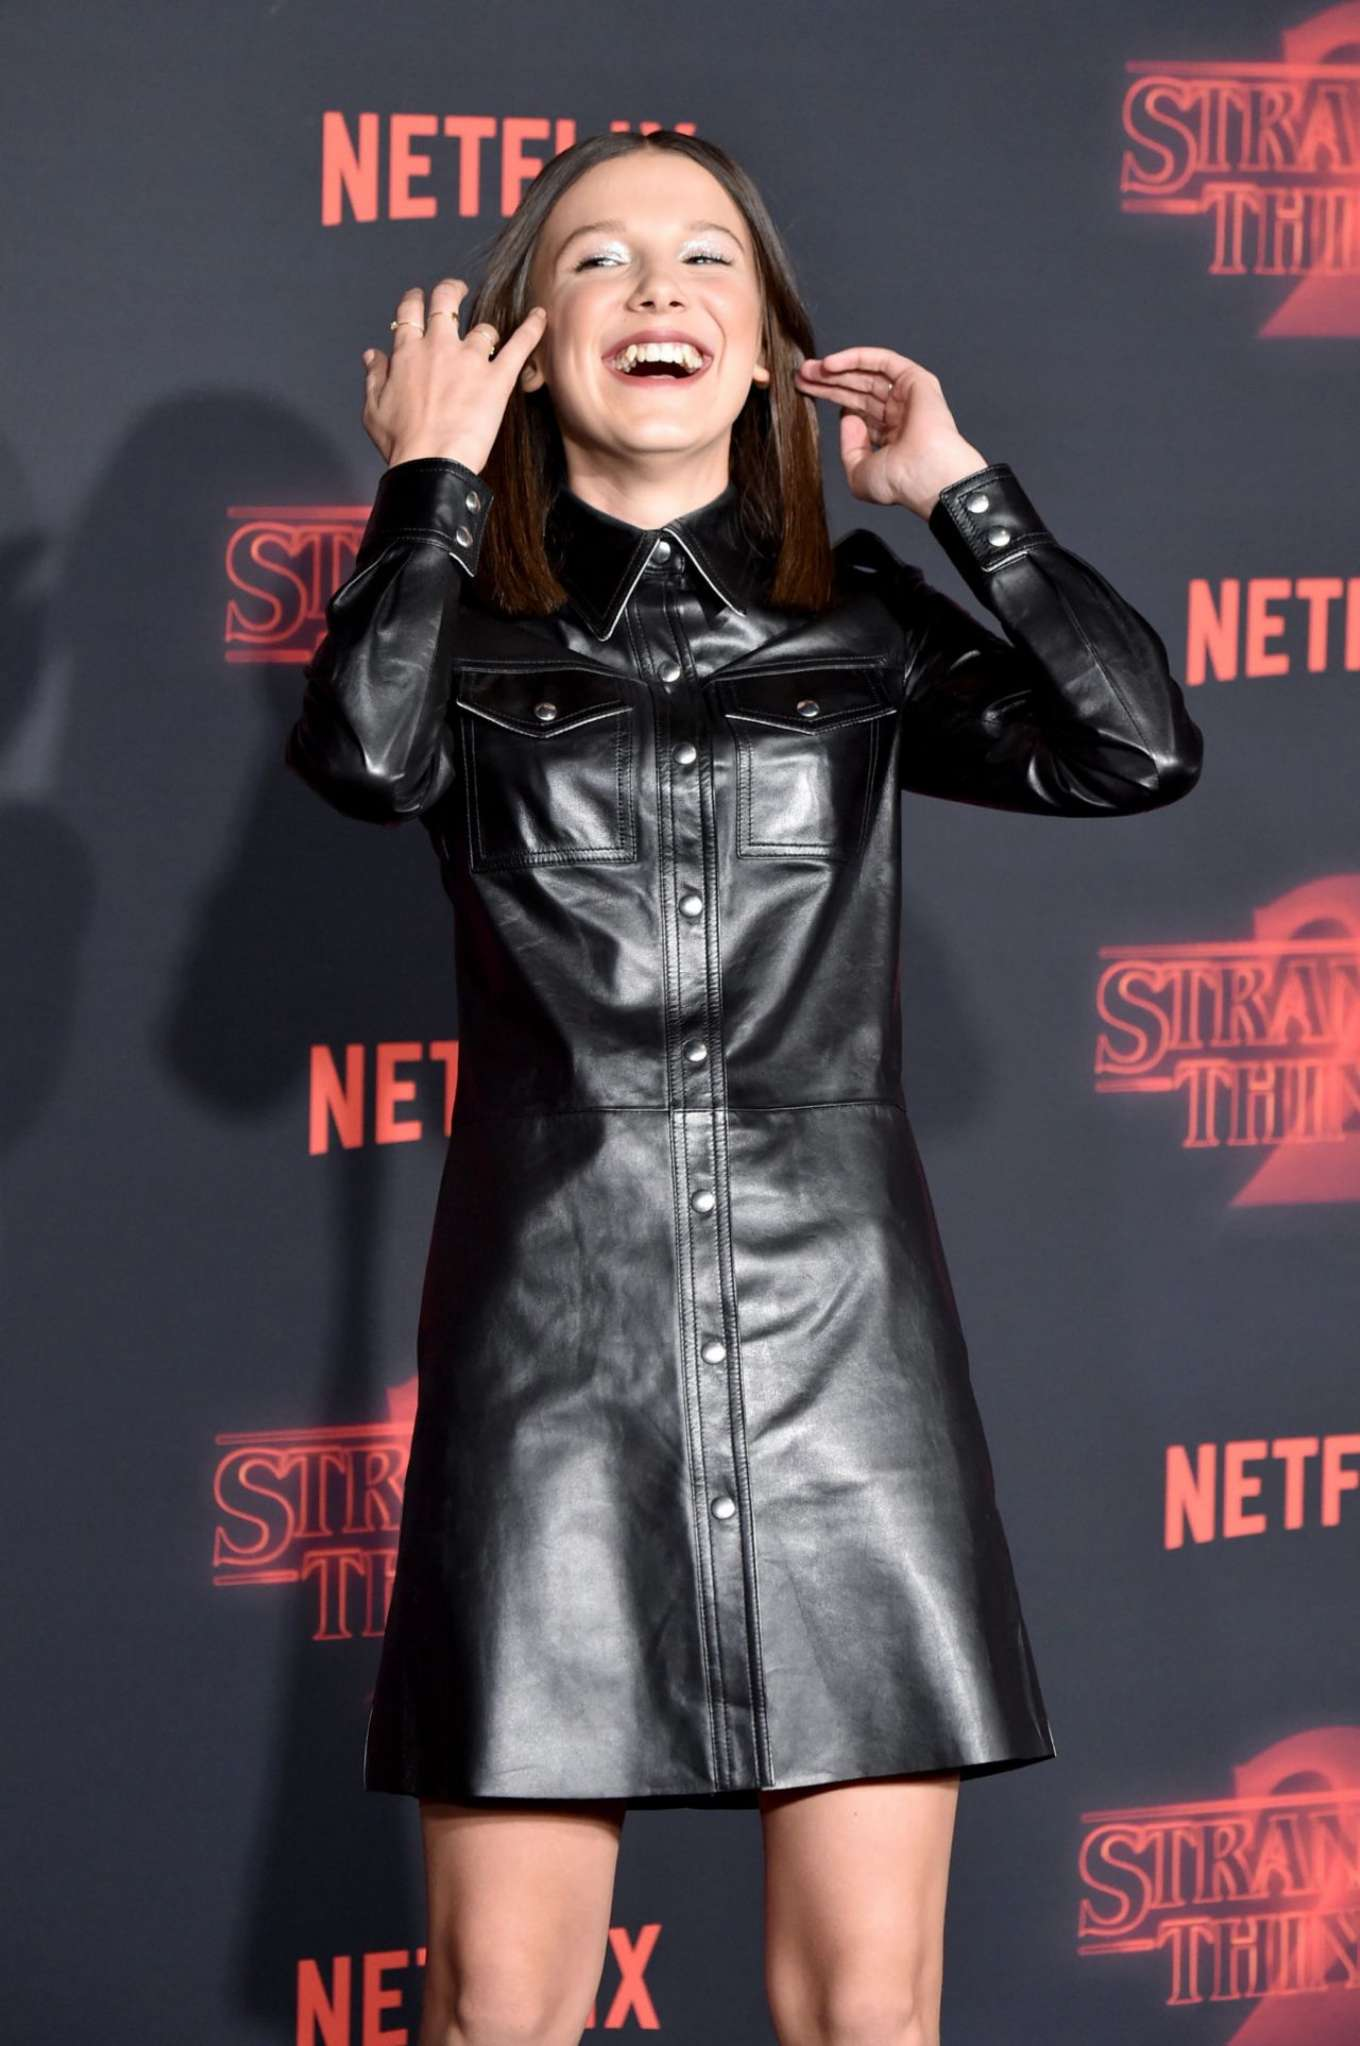 Millie Bobby Brown Stranger Things 2 Premiere In Los